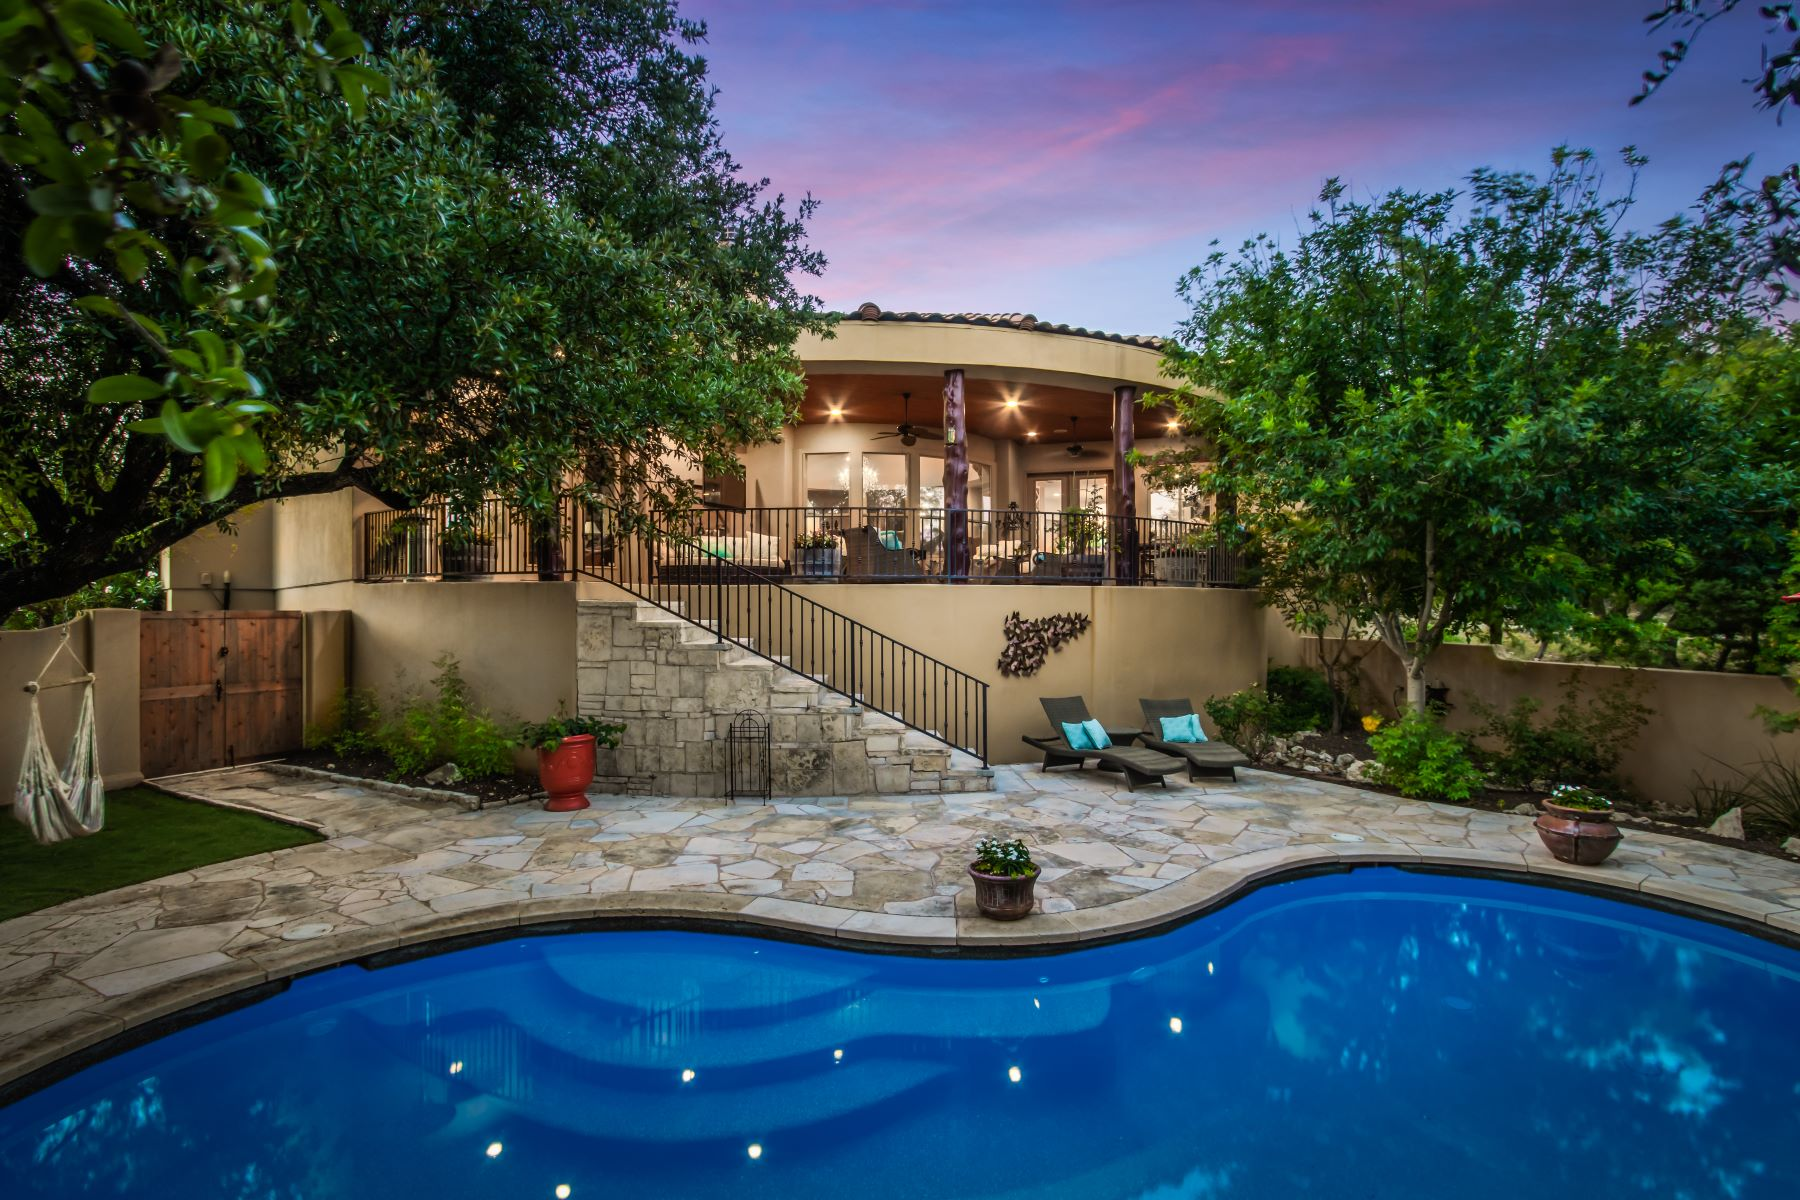 Single Family Homes for Sale at Modernistic Santa Fe design 4188 Bee Creek Road Spicewood, Texas 78669 United States